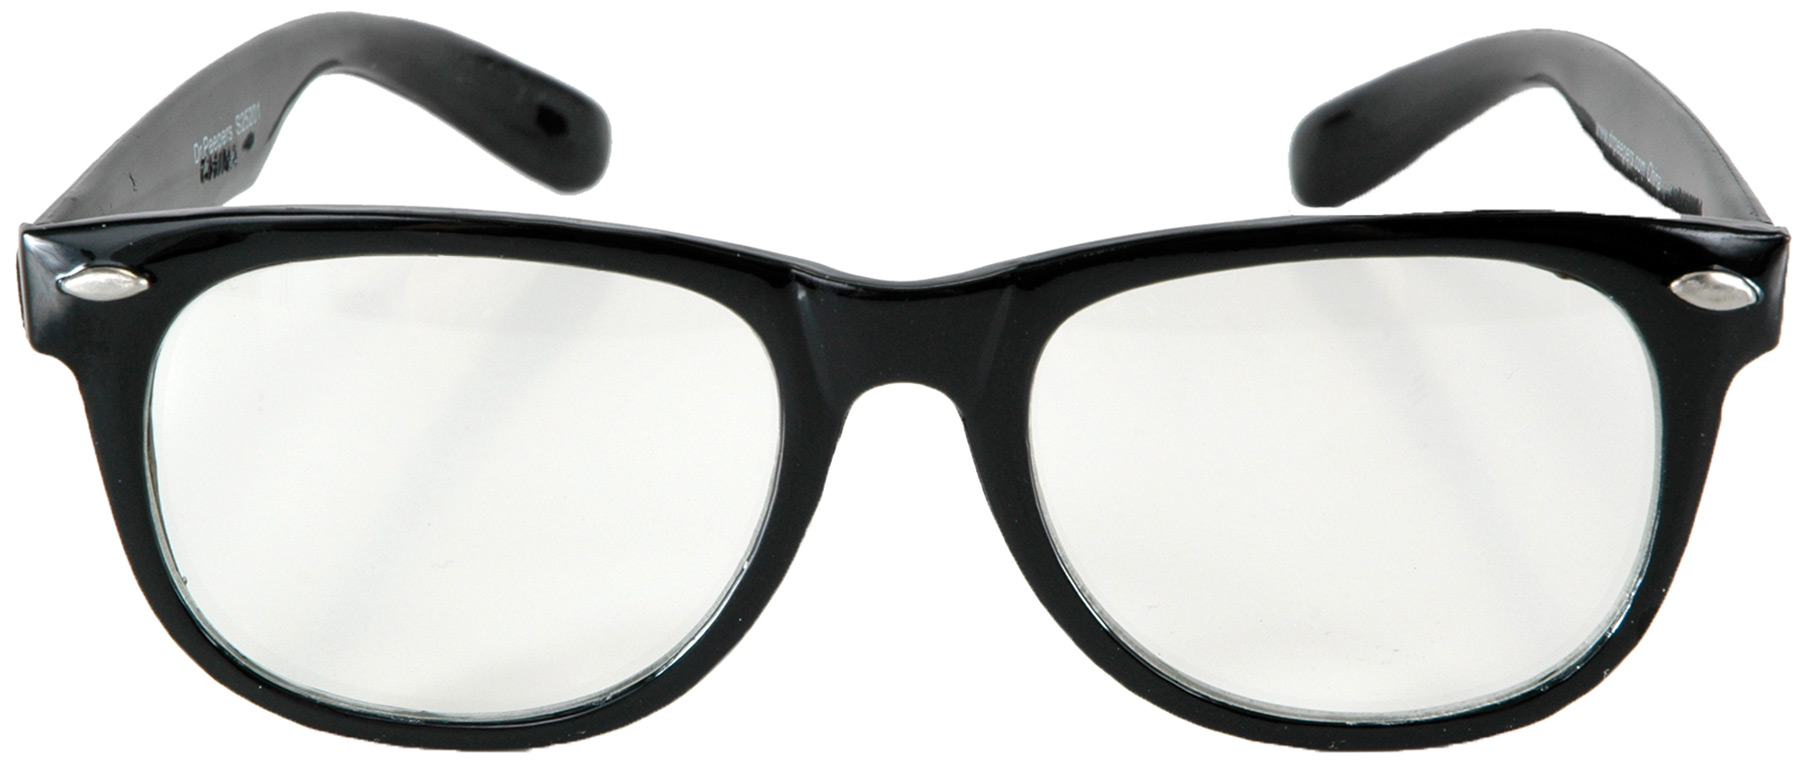 Featured Image for Black Blues Glasses